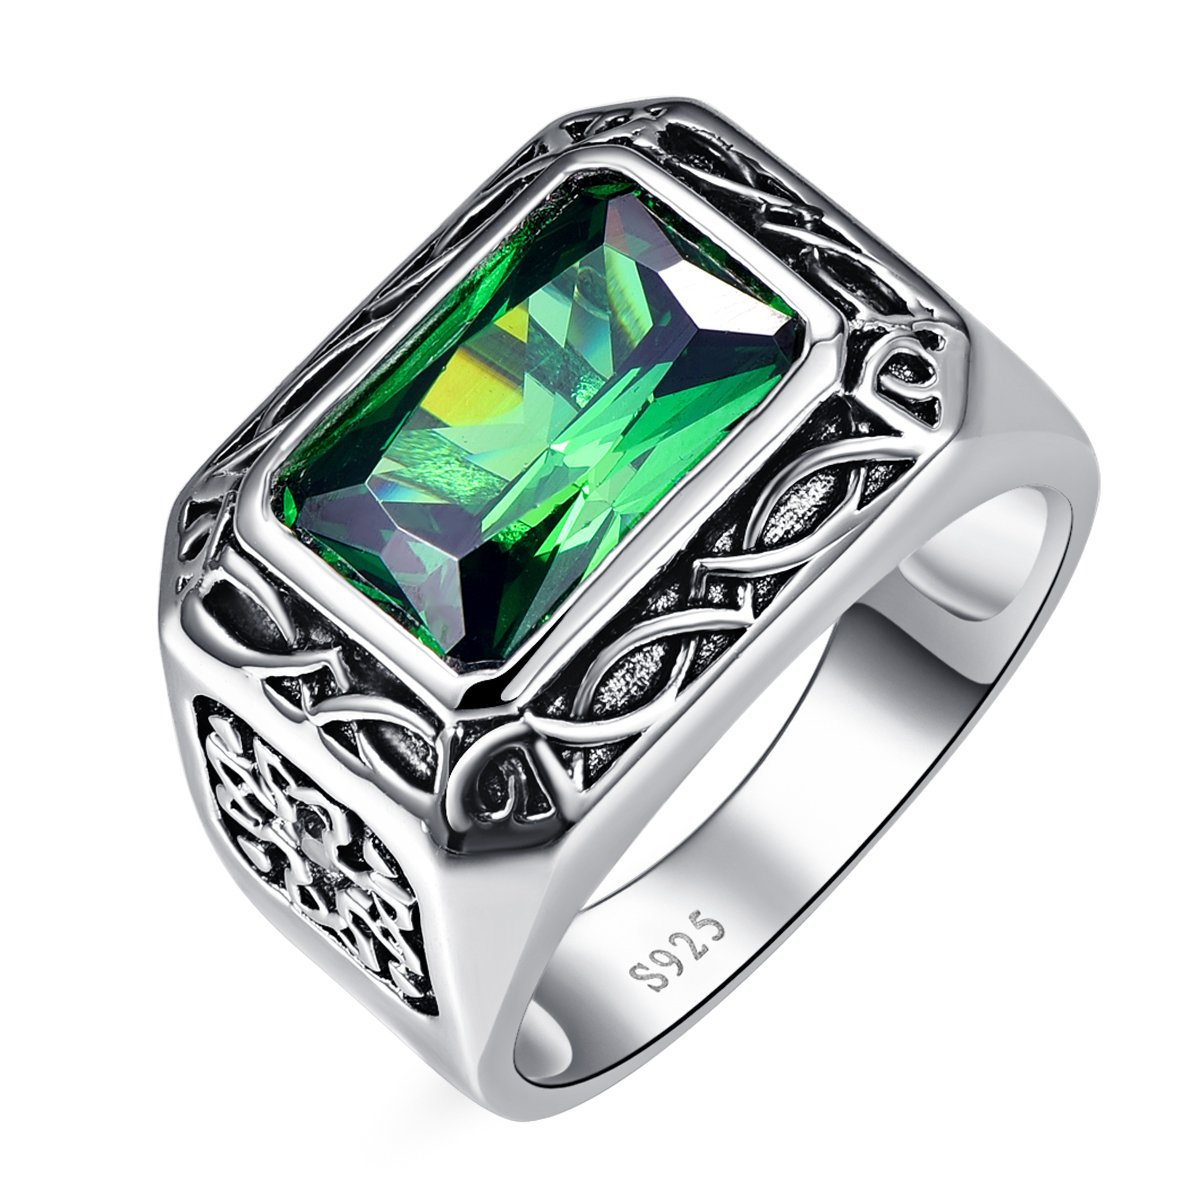 BONLAVIE 925 Sterling silver Fine Created Emerald and Cubic Zircon Ring Wedding Band for Men and Women Size 7 by BONLAVIE (Image #1)